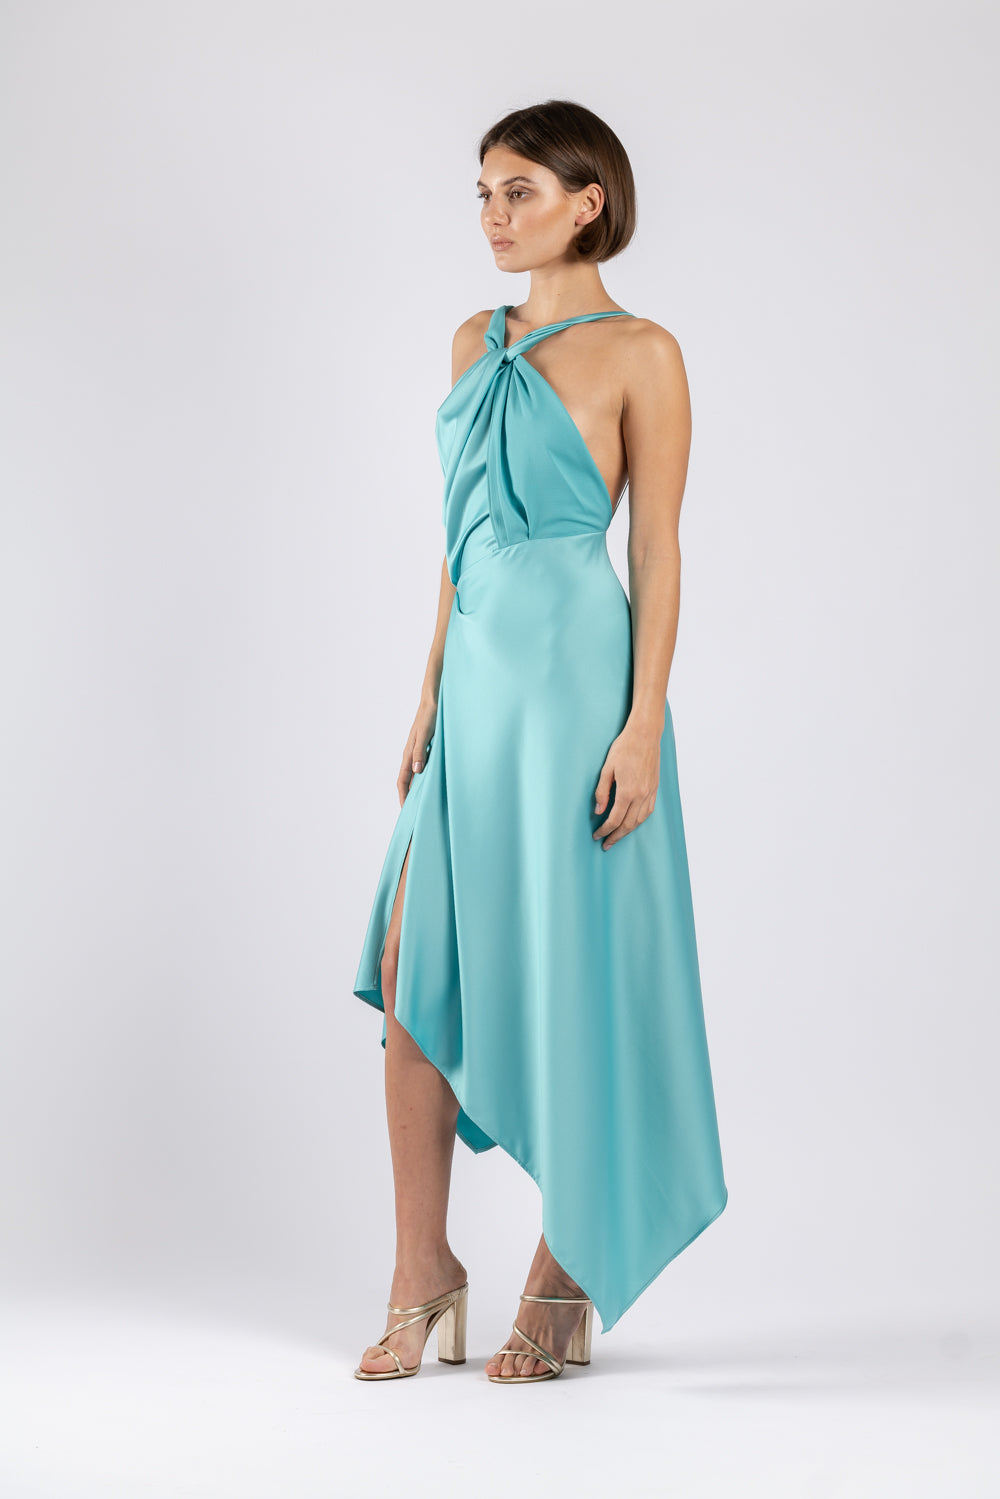 AUDREY DRESS IN MARINE